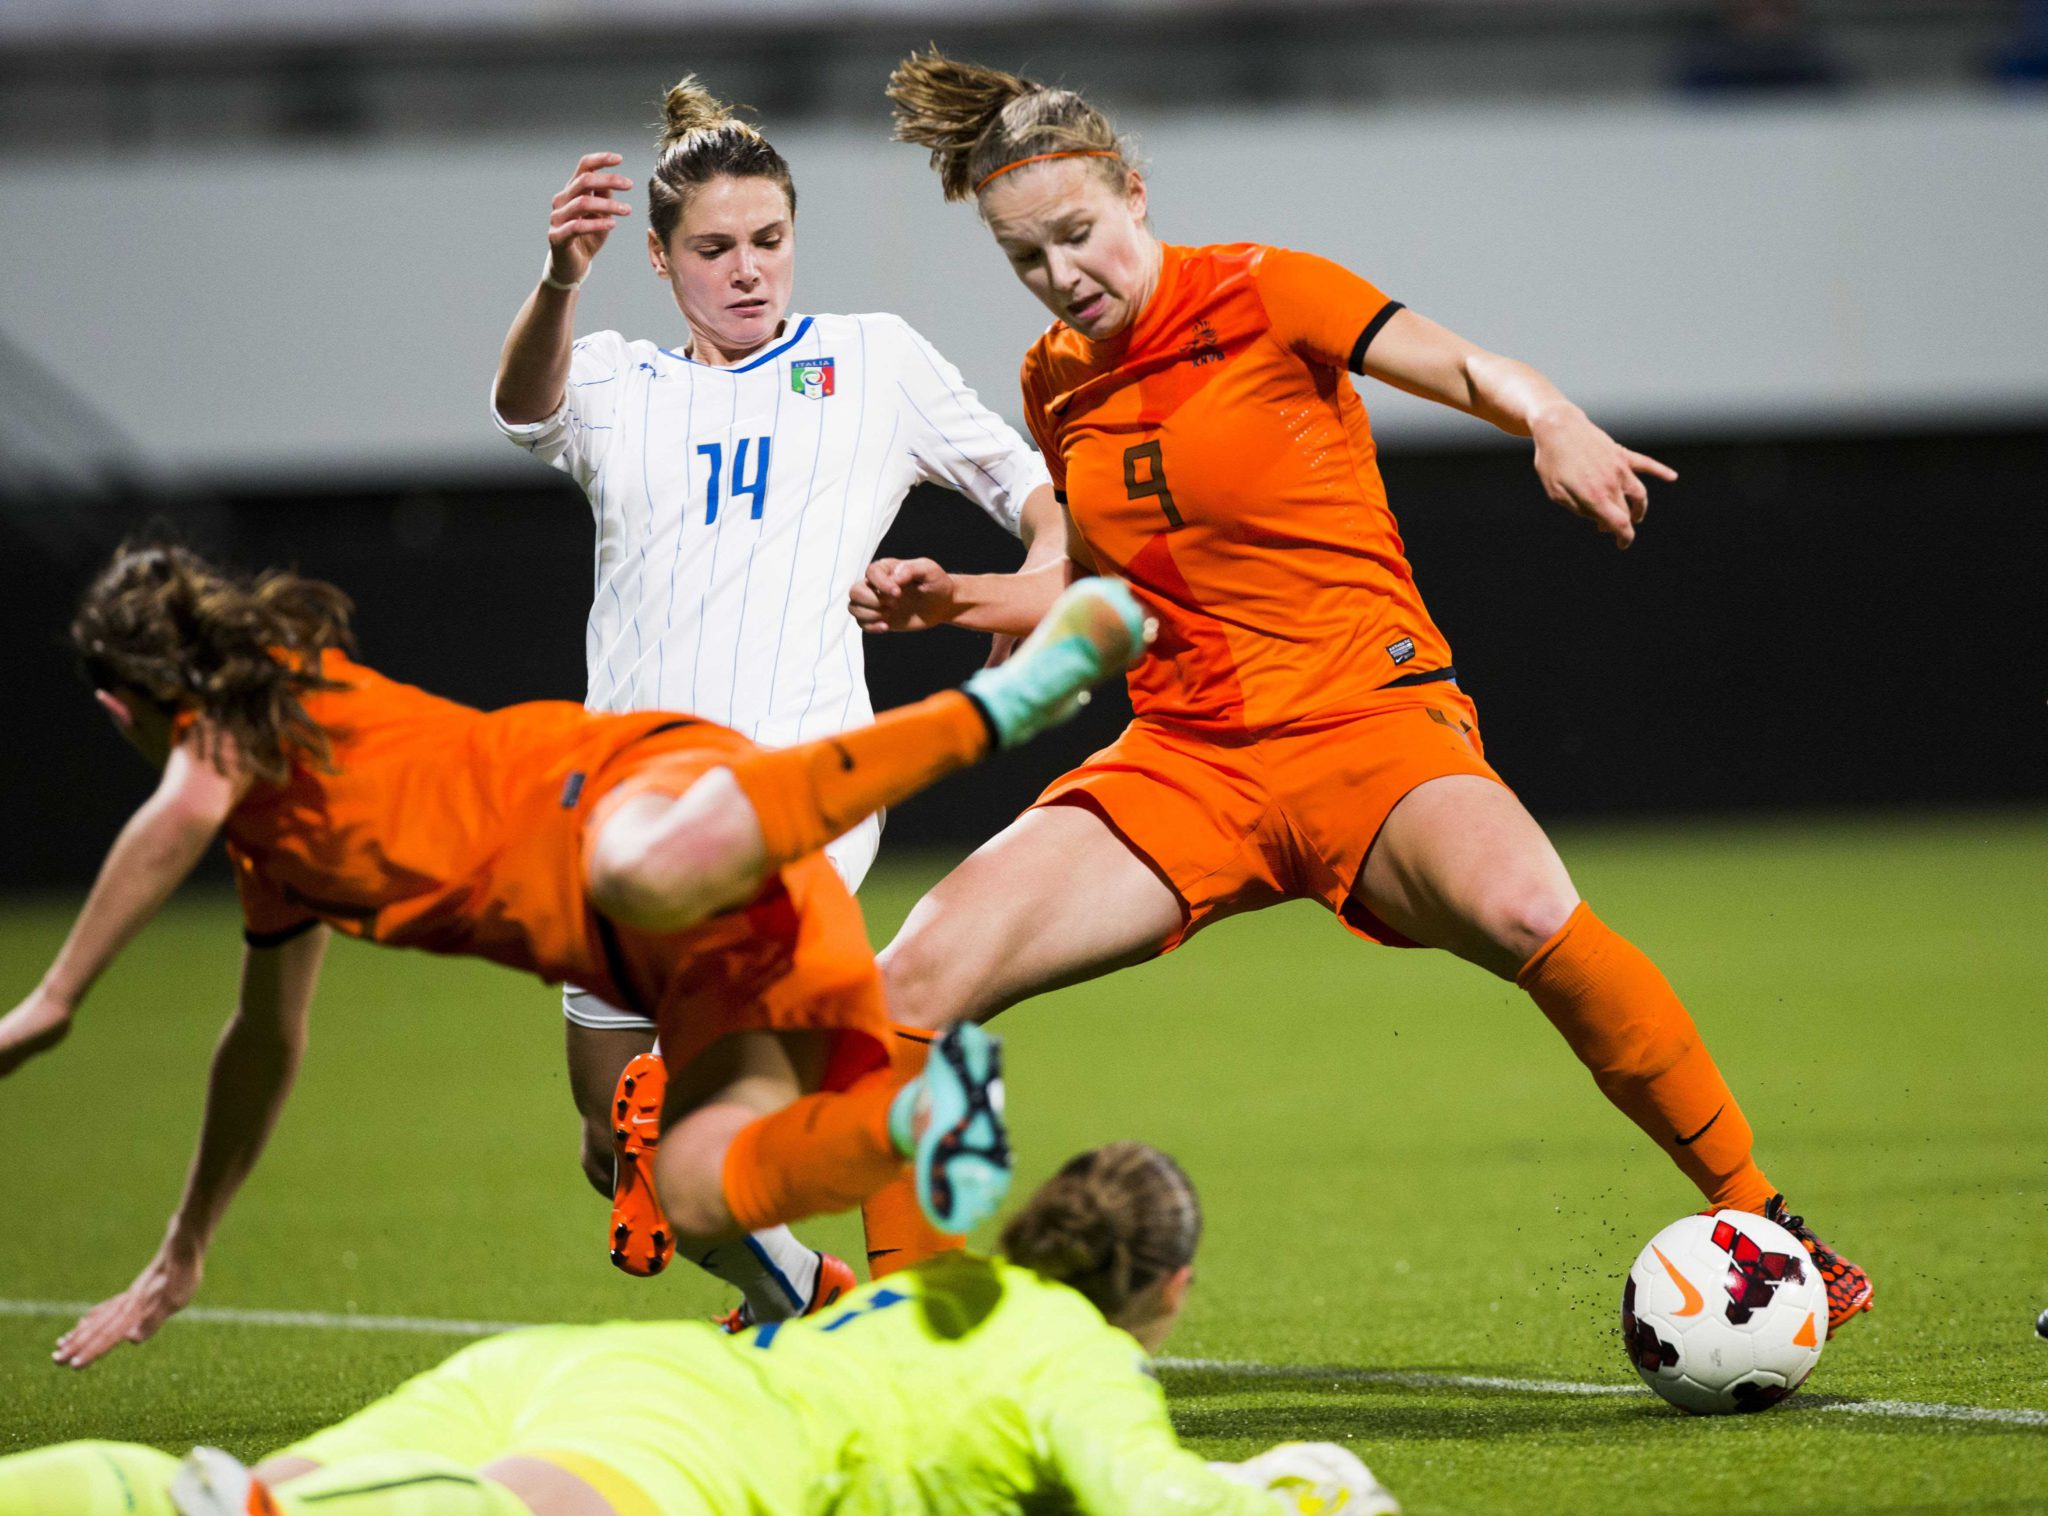 Vivianne Miedema (right) helped lead her Dutch side to an undefeated group stage performance as EURO hosts. (Getty Images)